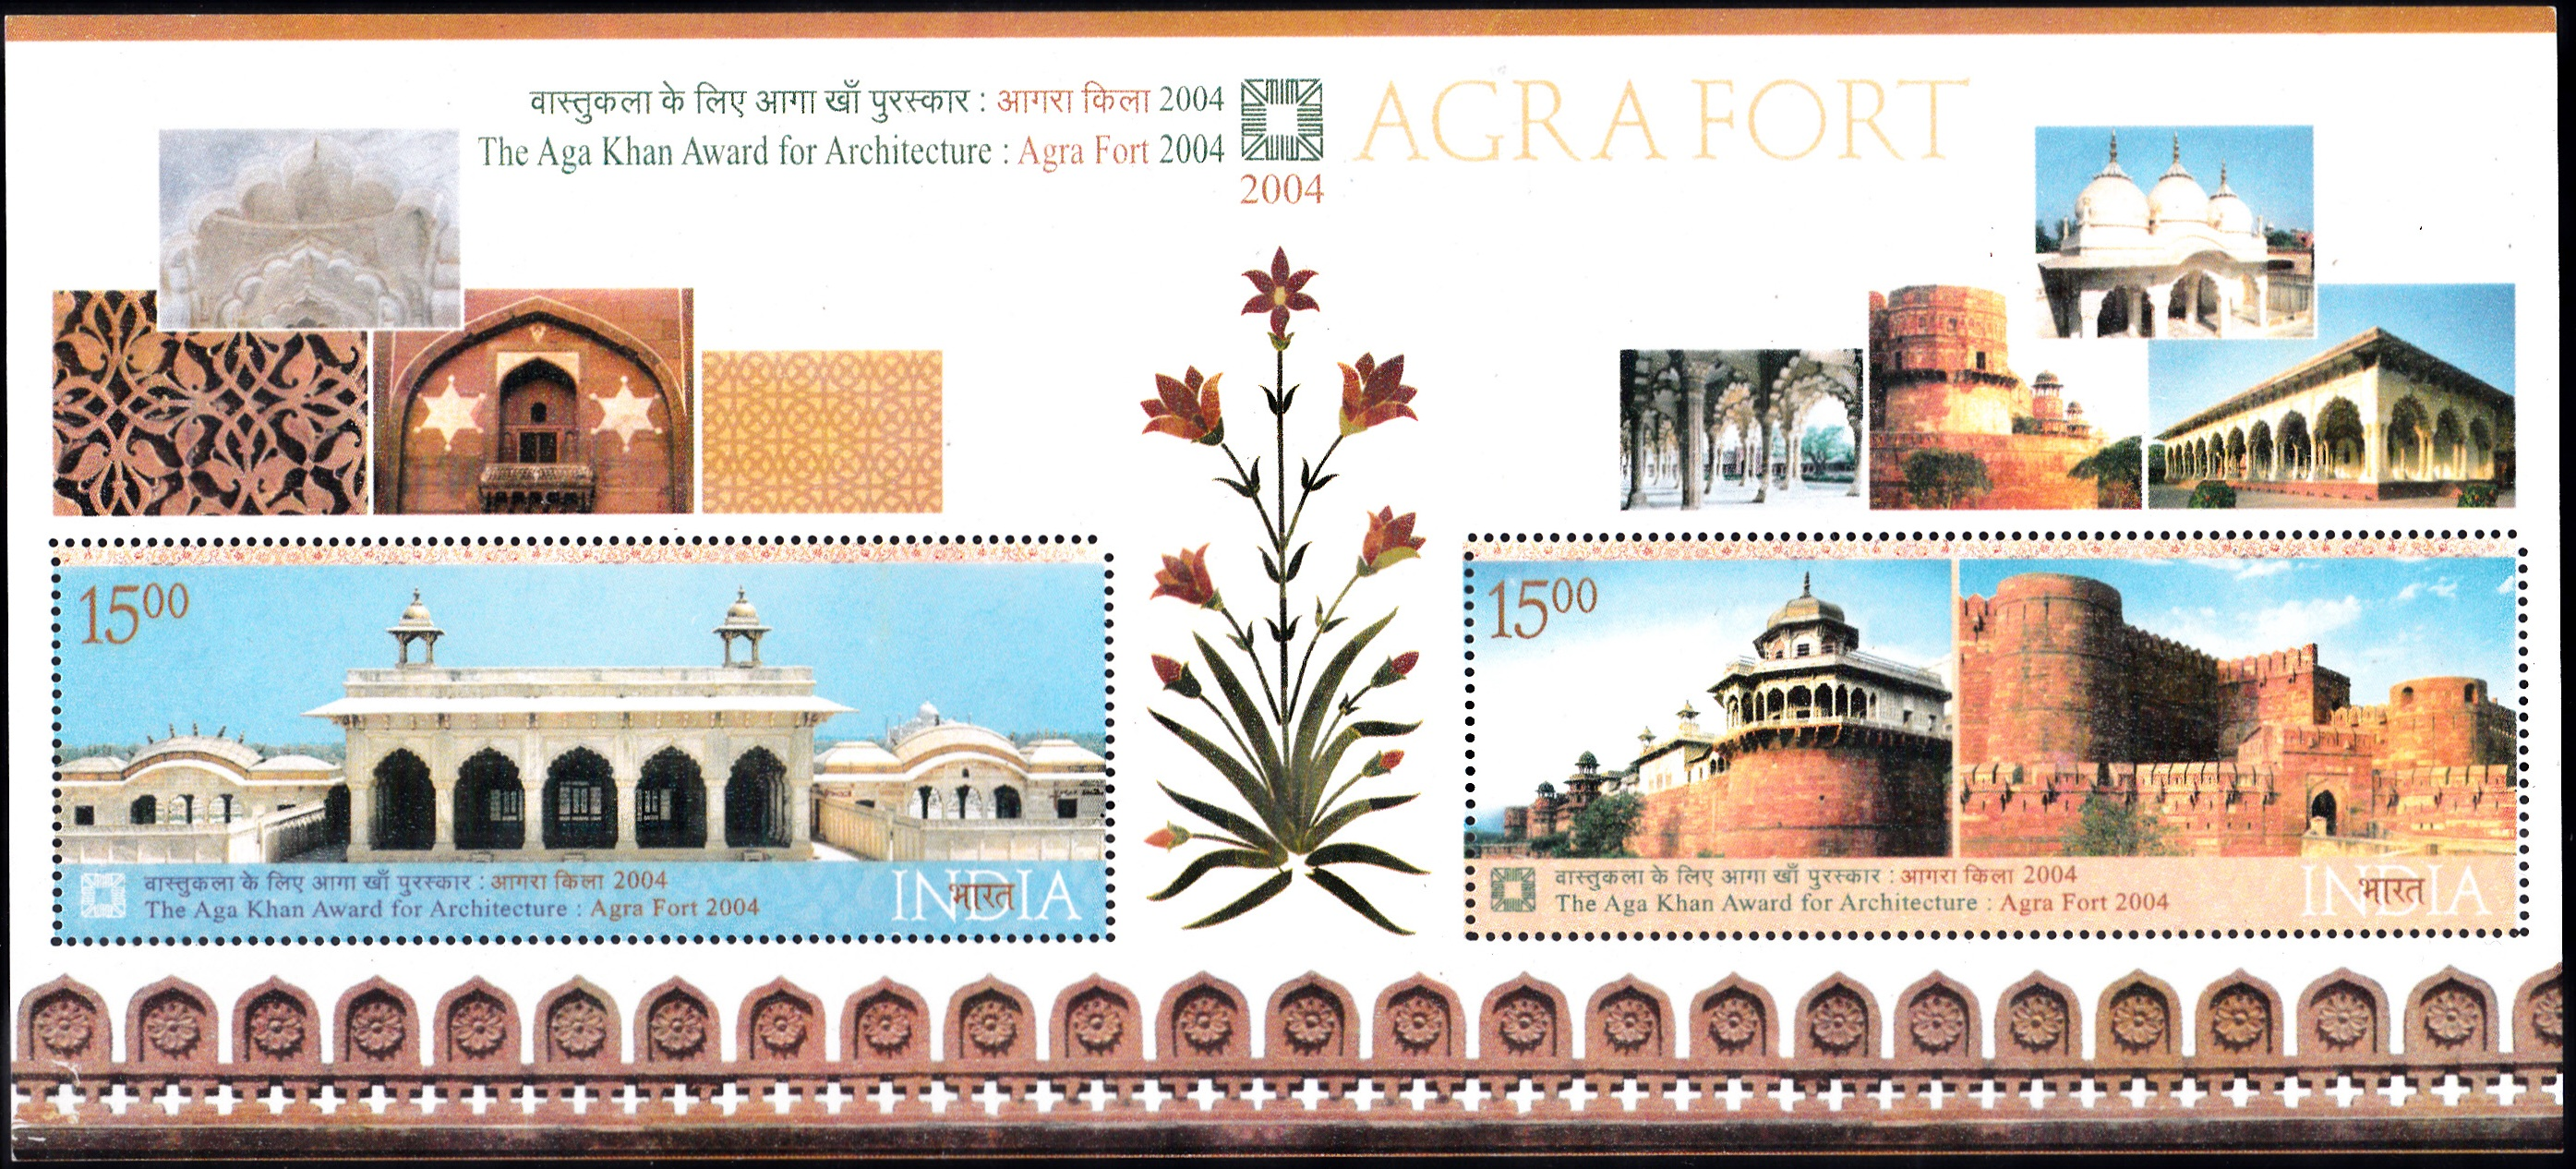 2096 Aga Khan Award for Architecture - Agra Fort [India Miniature Sheet 2004]